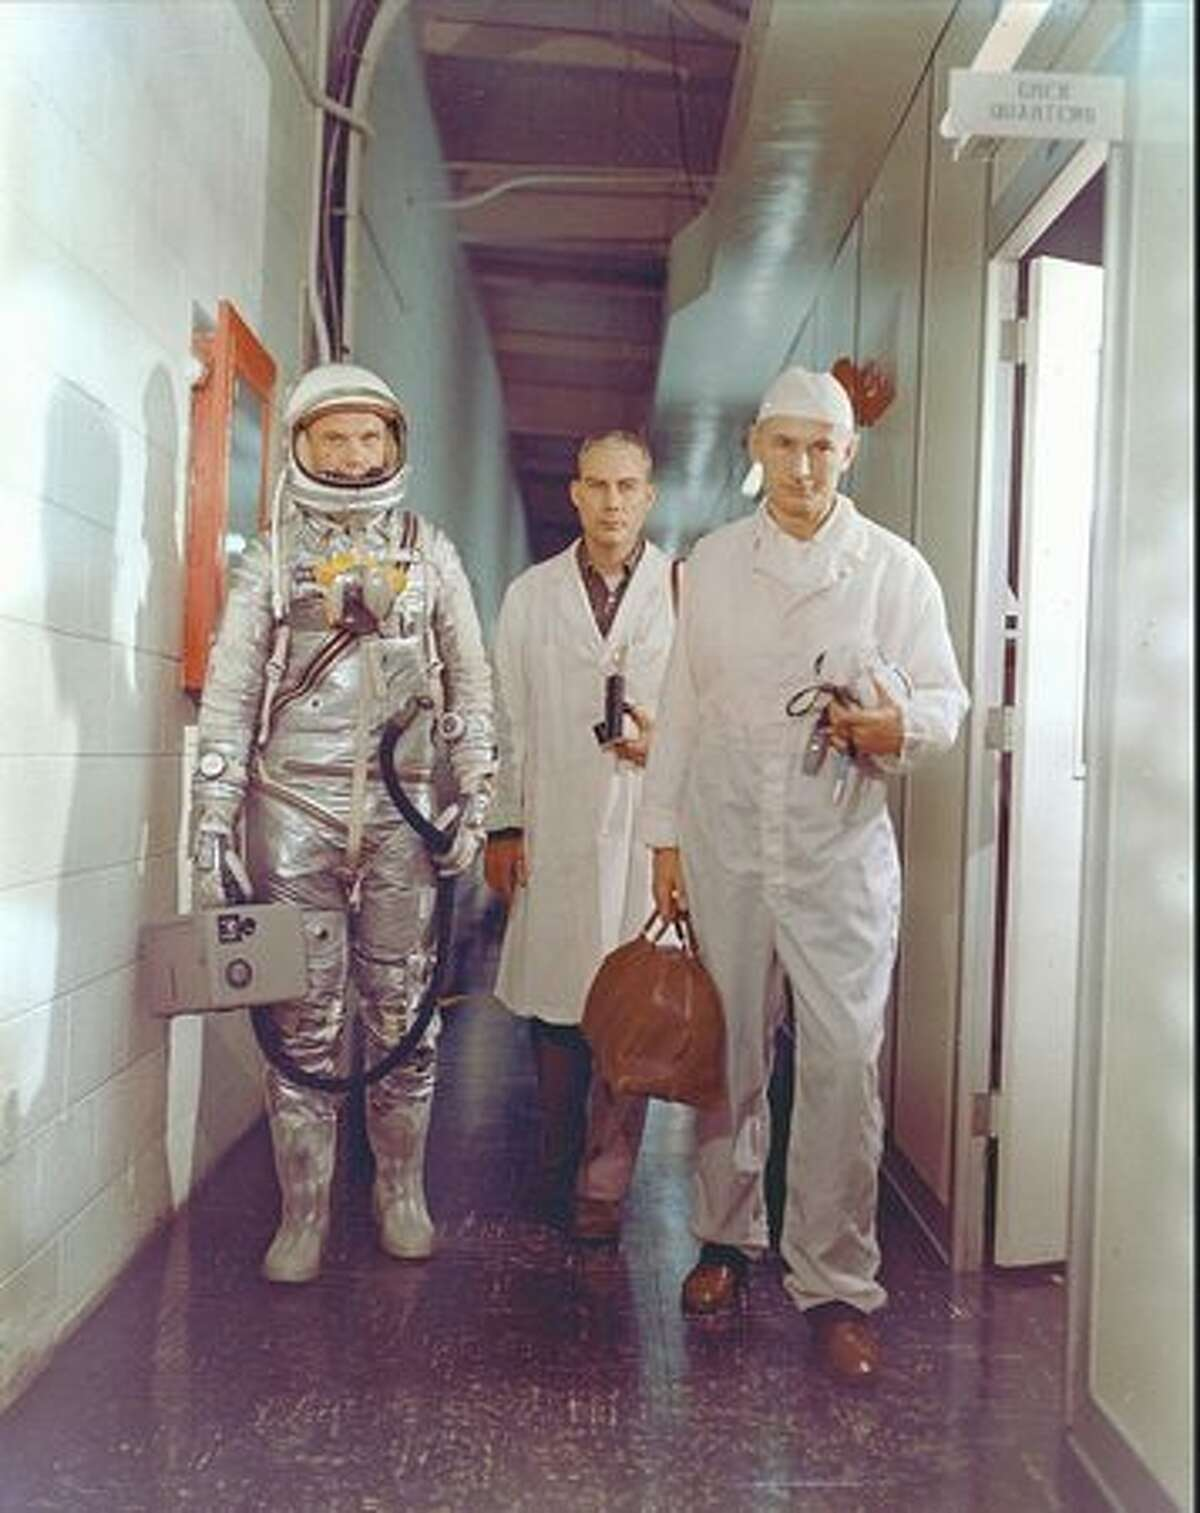 Astronaut John Glenn, NASA flight surgeon William Douglas and equipment specialist Joseph W. Schmidt leave crew quarters prior to the Mercury-Atlas 6 mission launch on Feb. 20, 1962. Glenn is in his pressure suit and is carrying the portable ventilation unit.